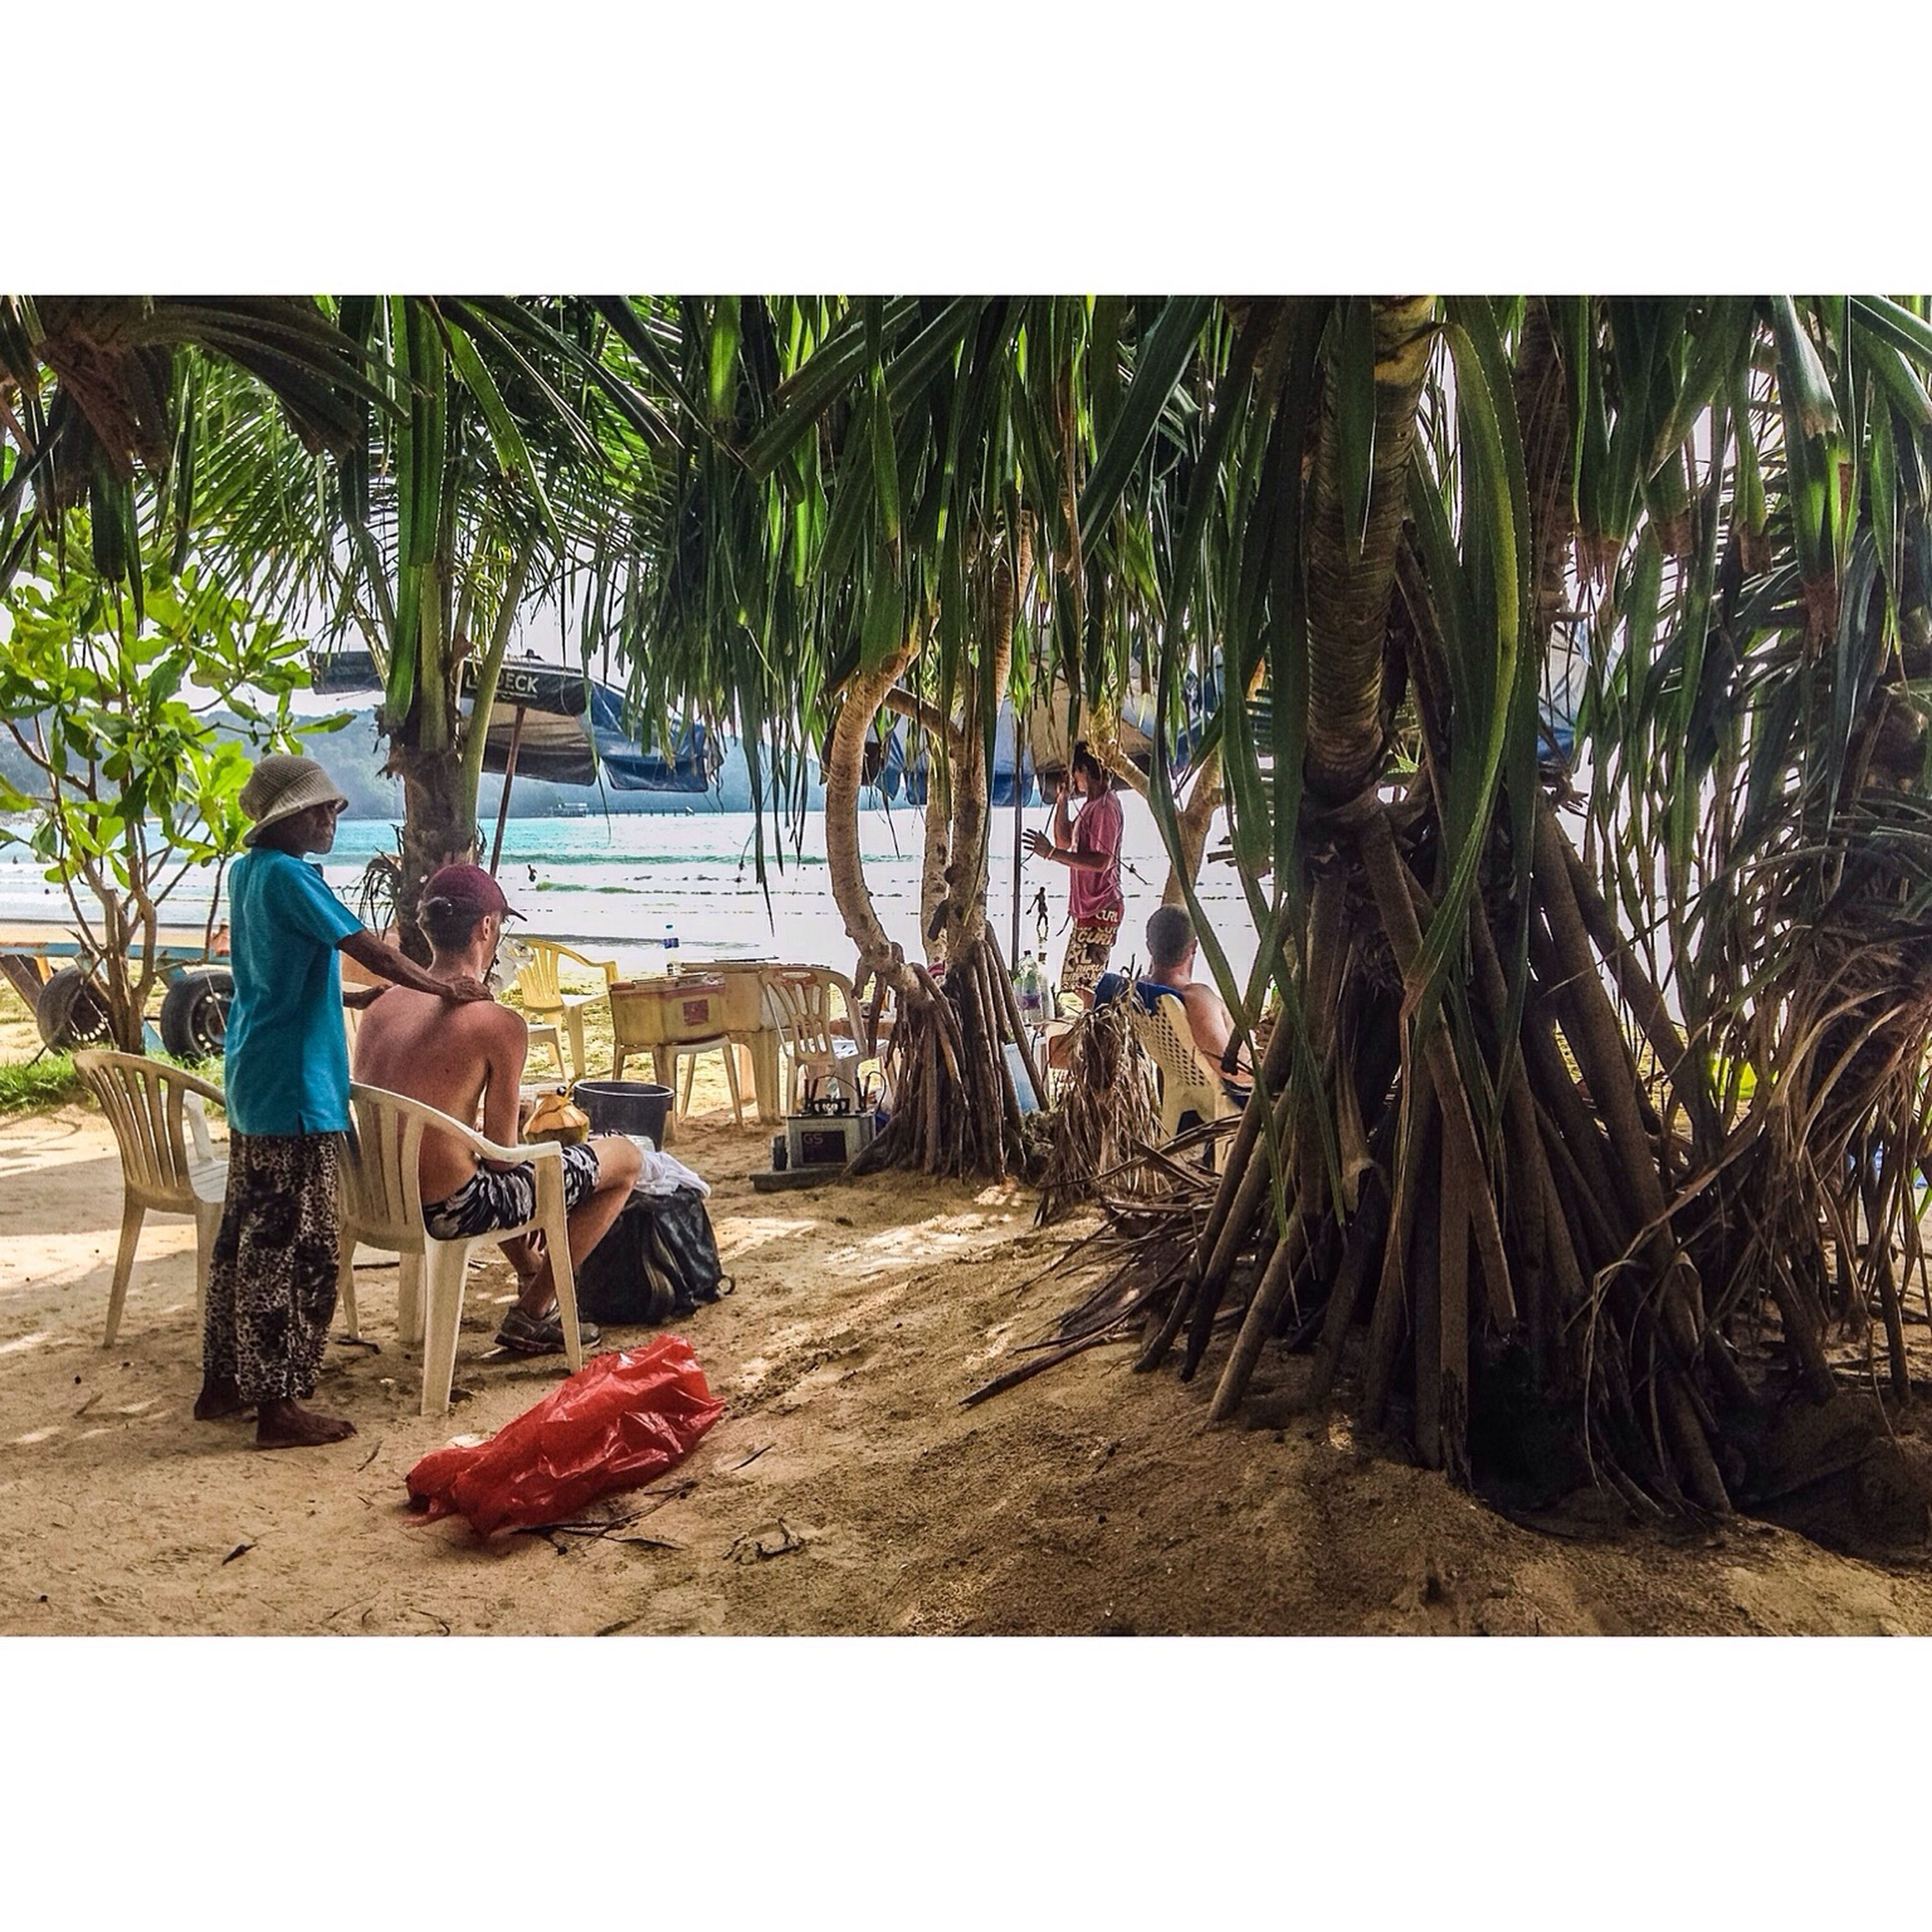 tree, palm tree, sitting, transportation, full length, tree trunk, men, growth, solitude, relaxation, day, person, plant, tranquil scene, tranquility, nature, outdoors